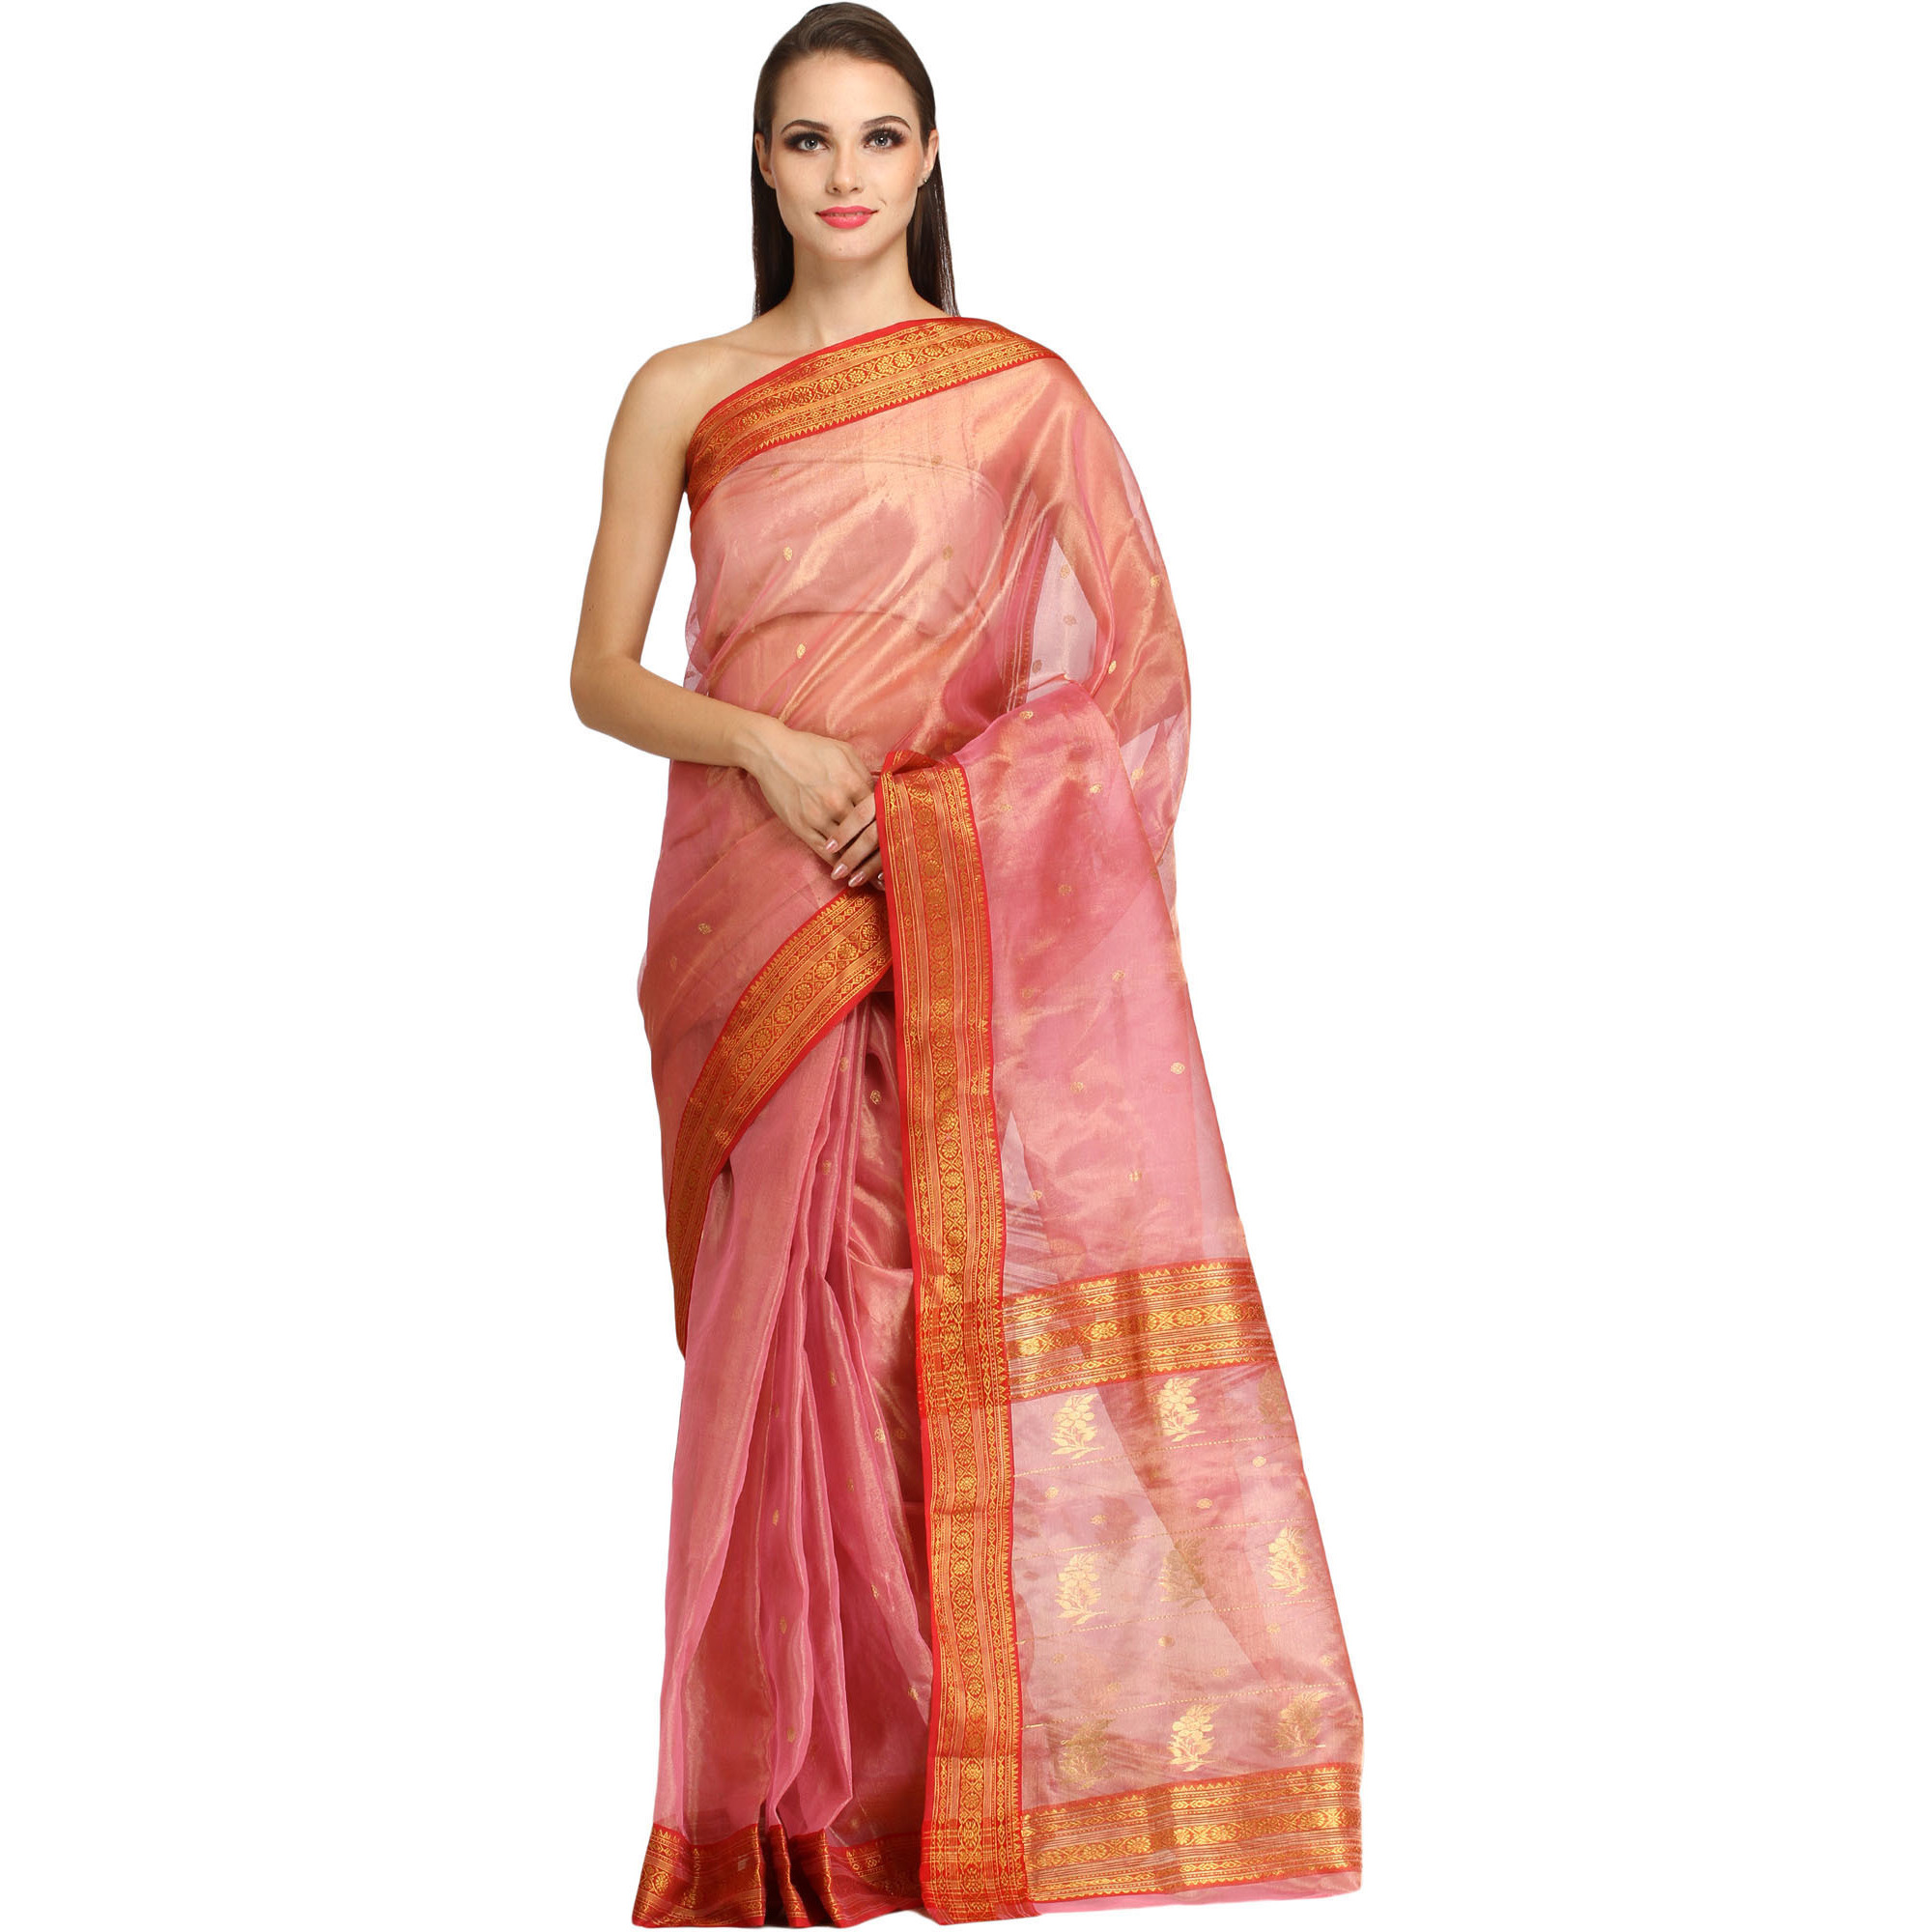 Strawberry-Ice Chanderi Tissue Sari with Woven Small Bootis and Brocaded Border